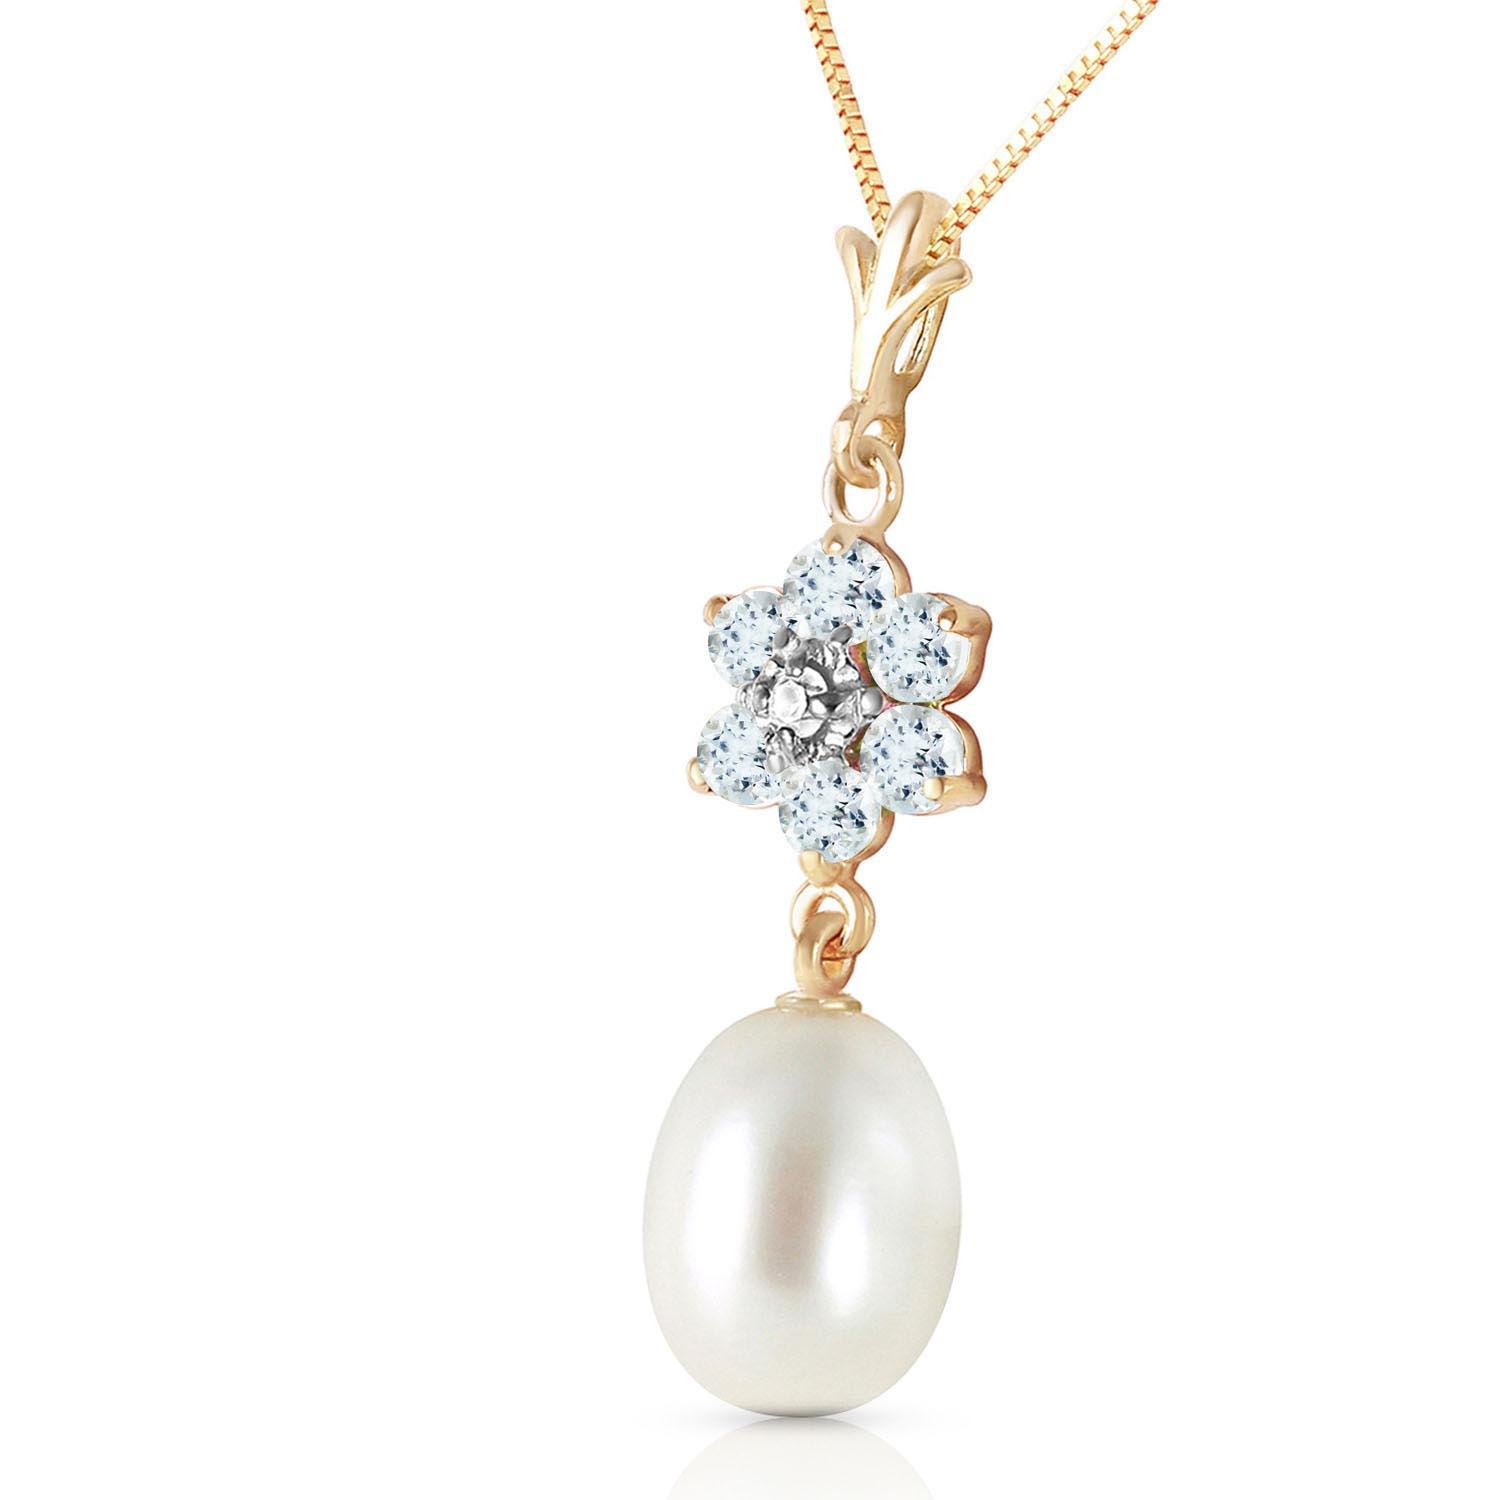 Pearl, Aquamarine and Diamond Daisy Pendant Necklace 4.5ctw in 9ct Gold